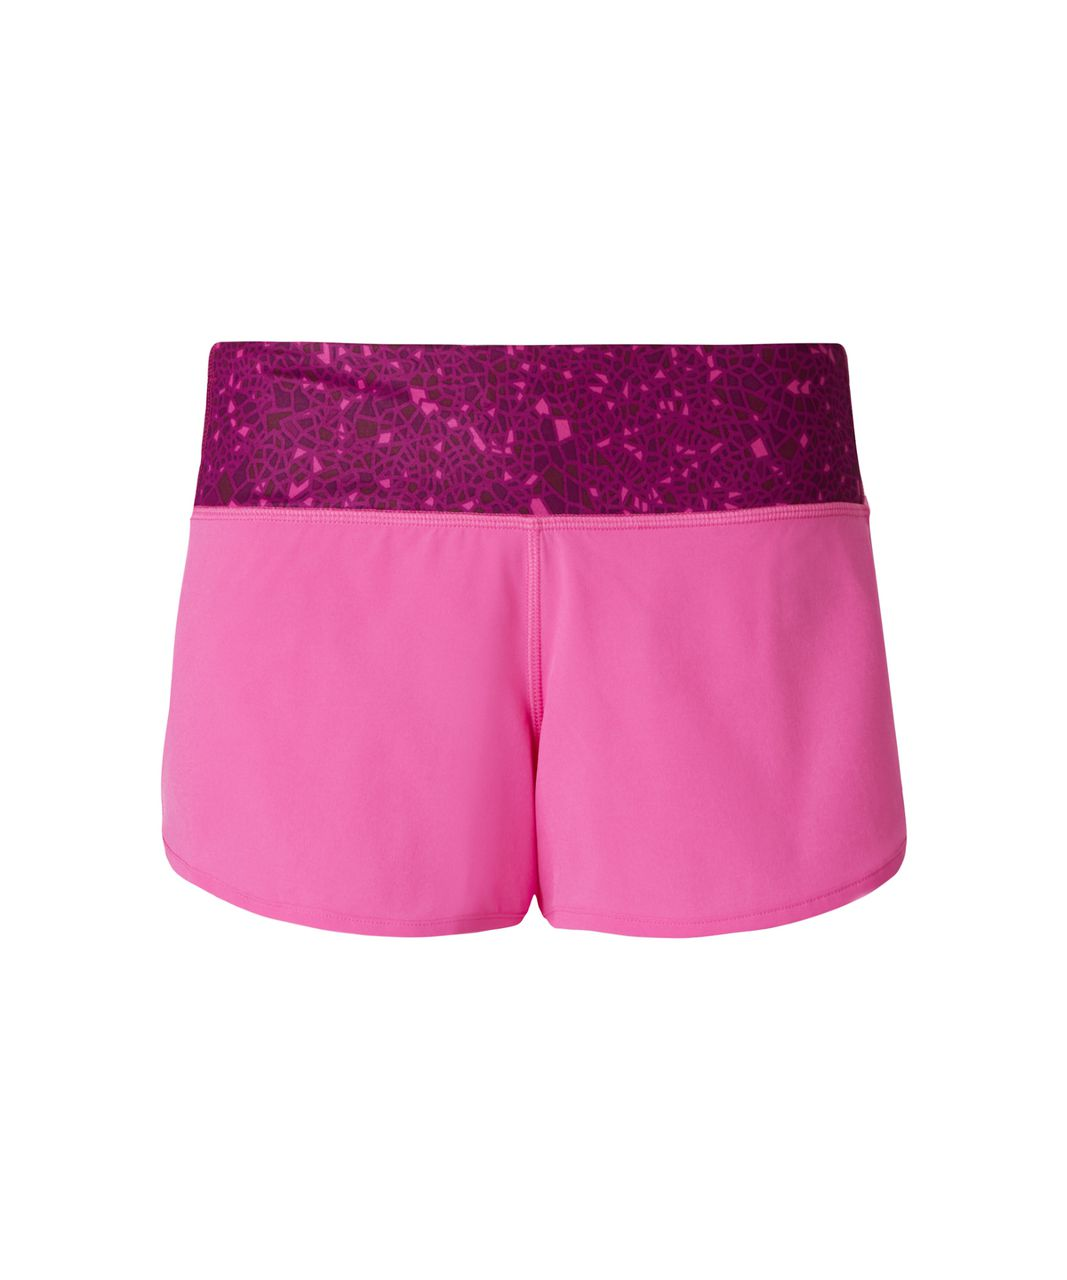 Lululemon Speed Short - Pink Paradise / Paradise Geo Regal Plum Multi